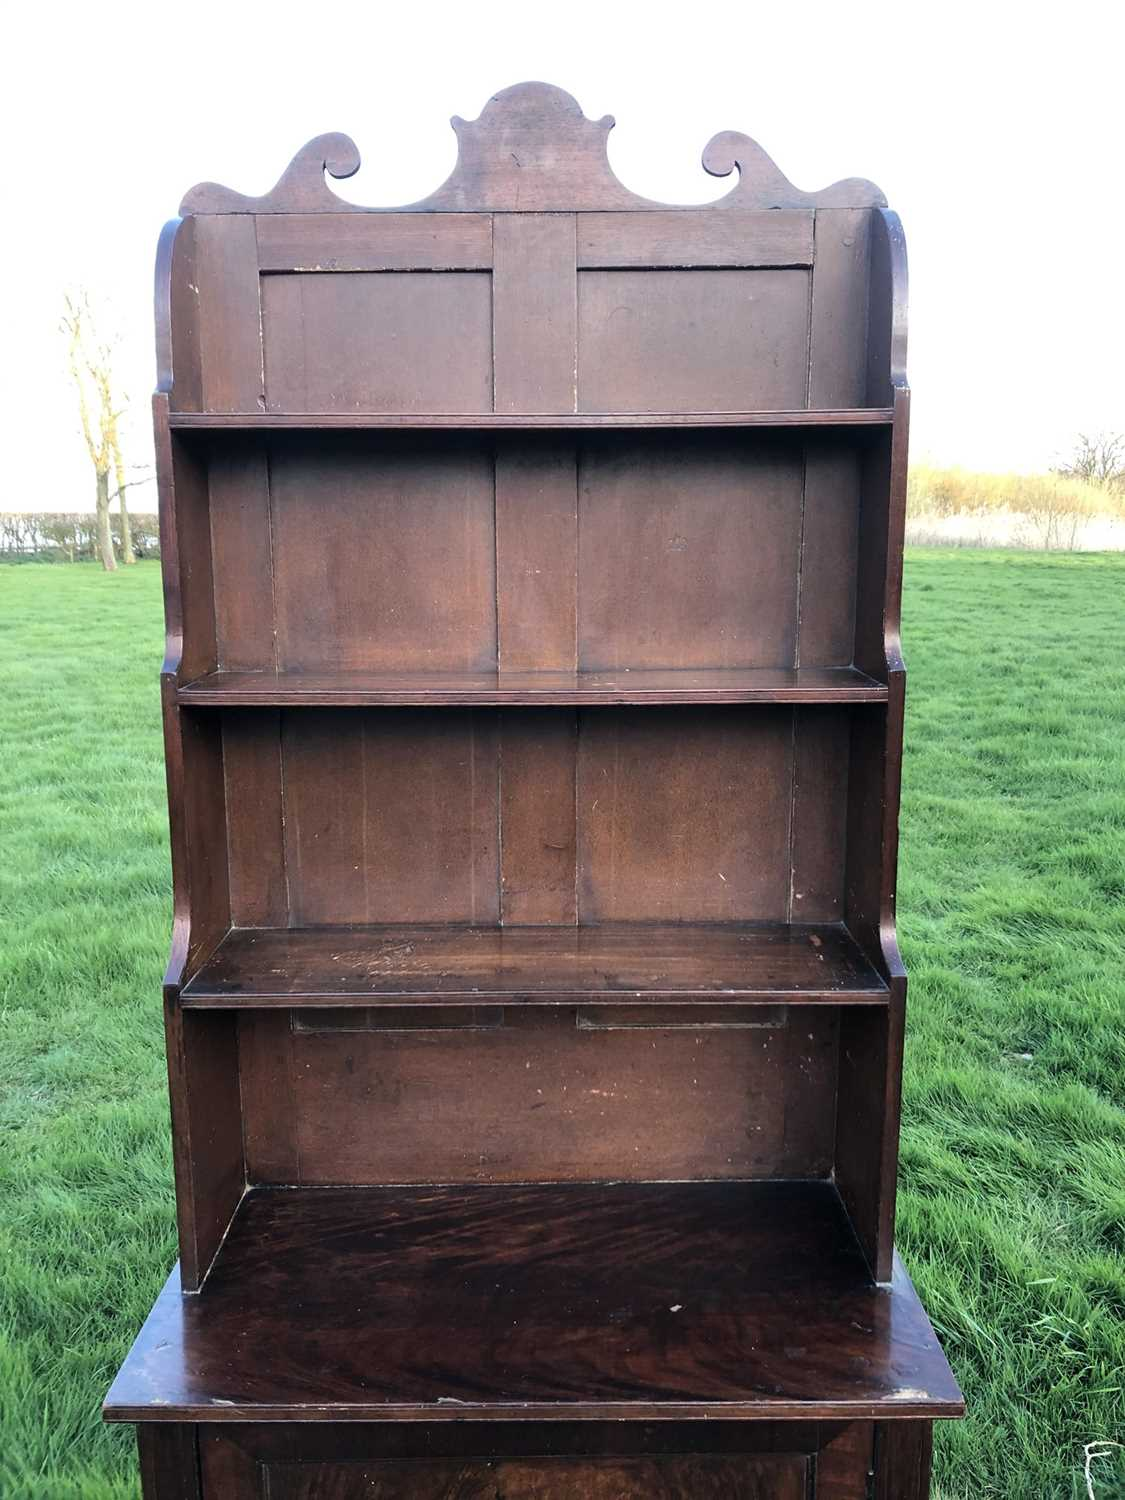 19th century mahogany and grained waterfall bookcase with scrolling top rail and graduated open shel - Image 7 of 7